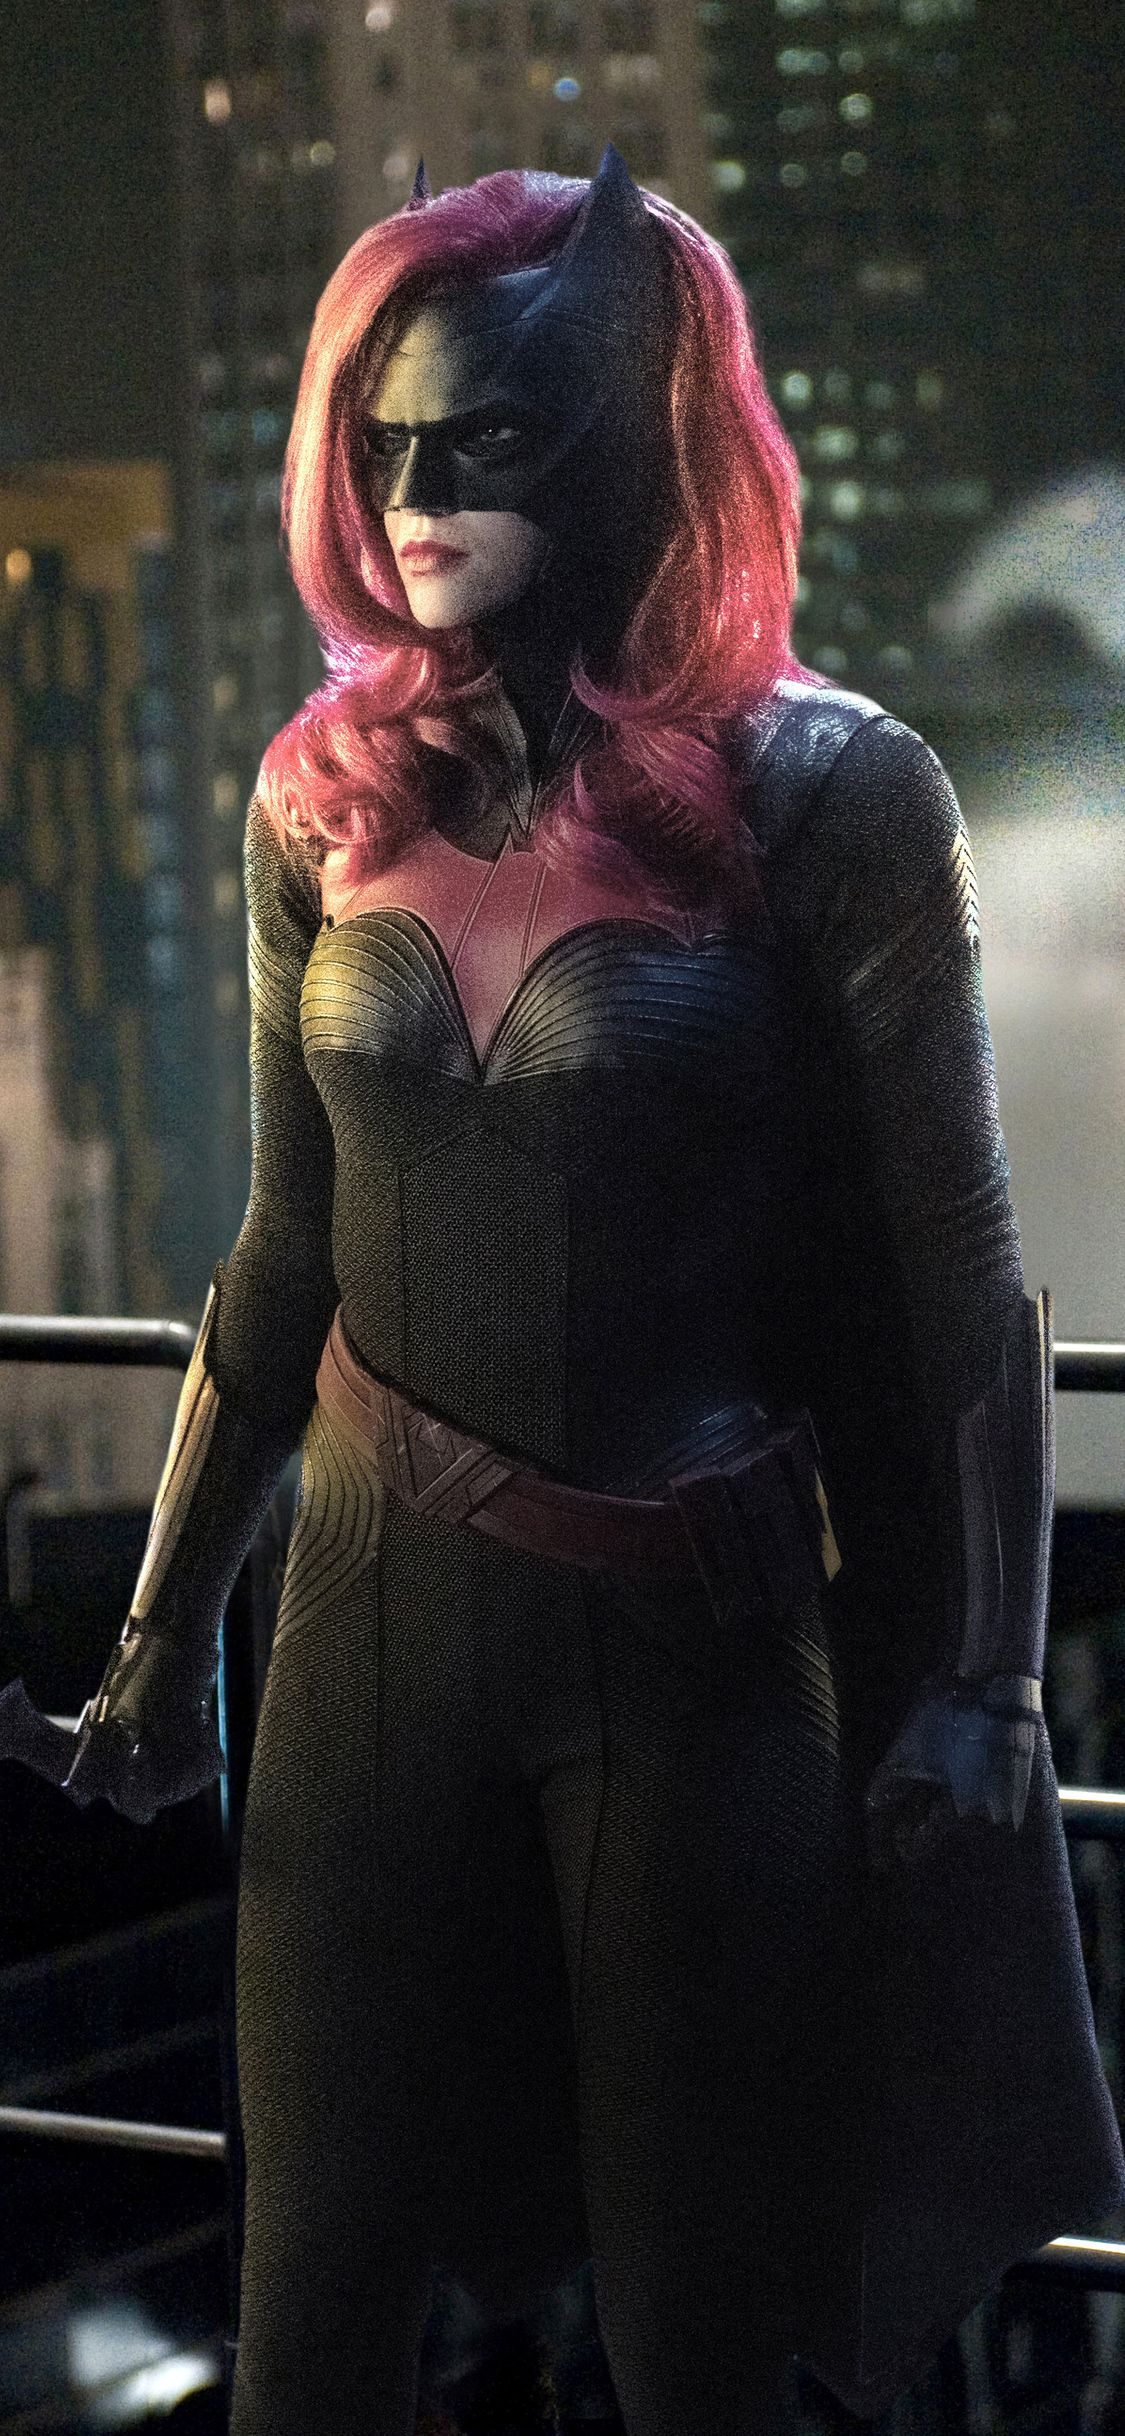 1125x2436 Batwoman Ruby Rose Iphone Xs Iphone 10 Iphone X Hd 4k Wallpapers Images Backgrounds Photos And Pictures Batwoman Ruby Rose Dc Superheroes